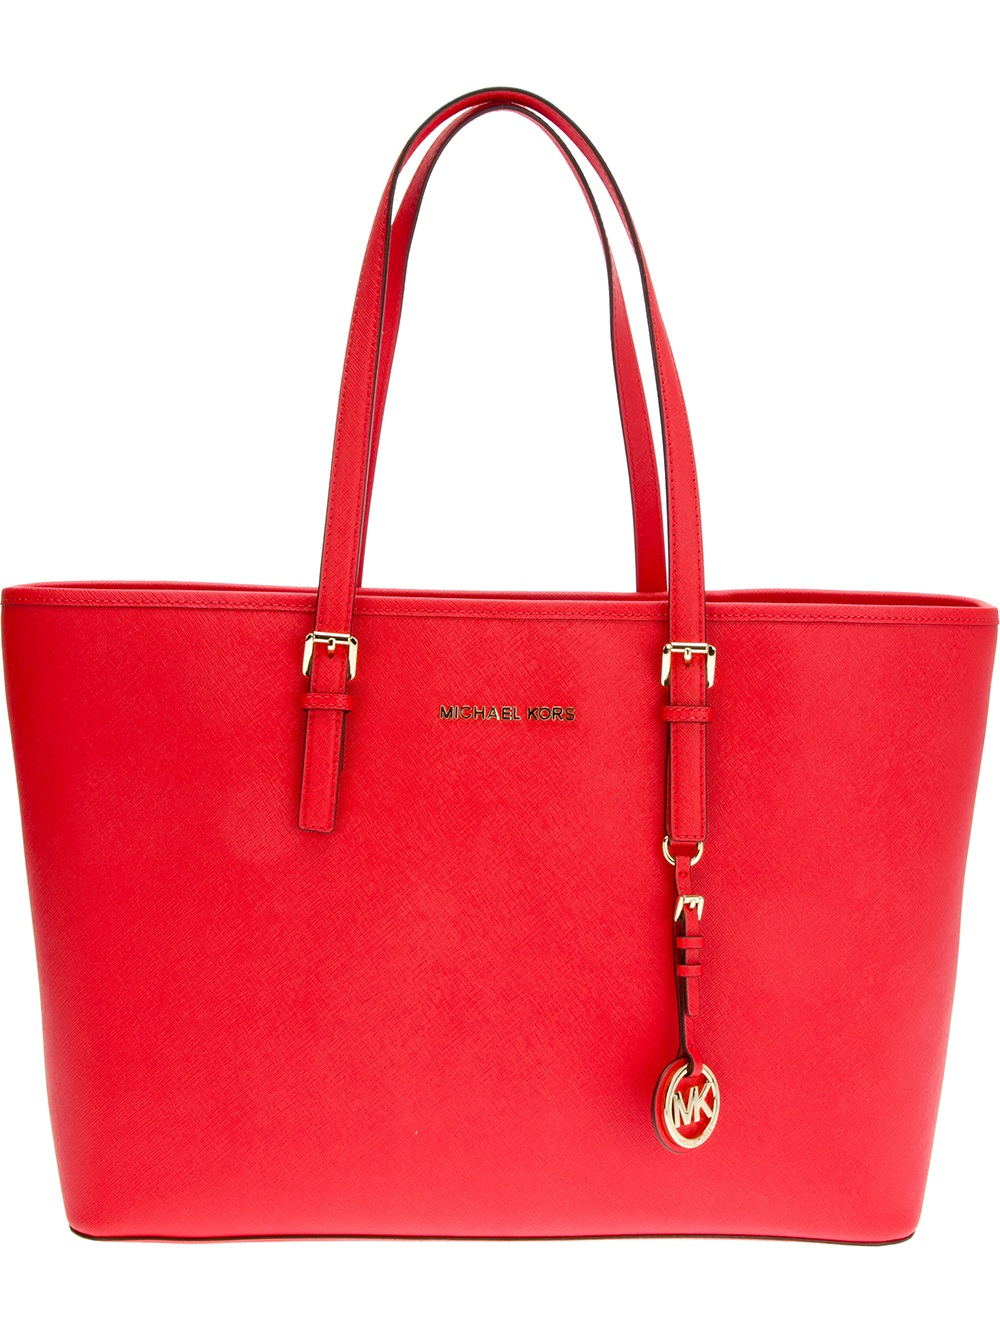 michael michael kors jet set shopper tote in red lyst. Black Bedroom Furniture Sets. Home Design Ideas